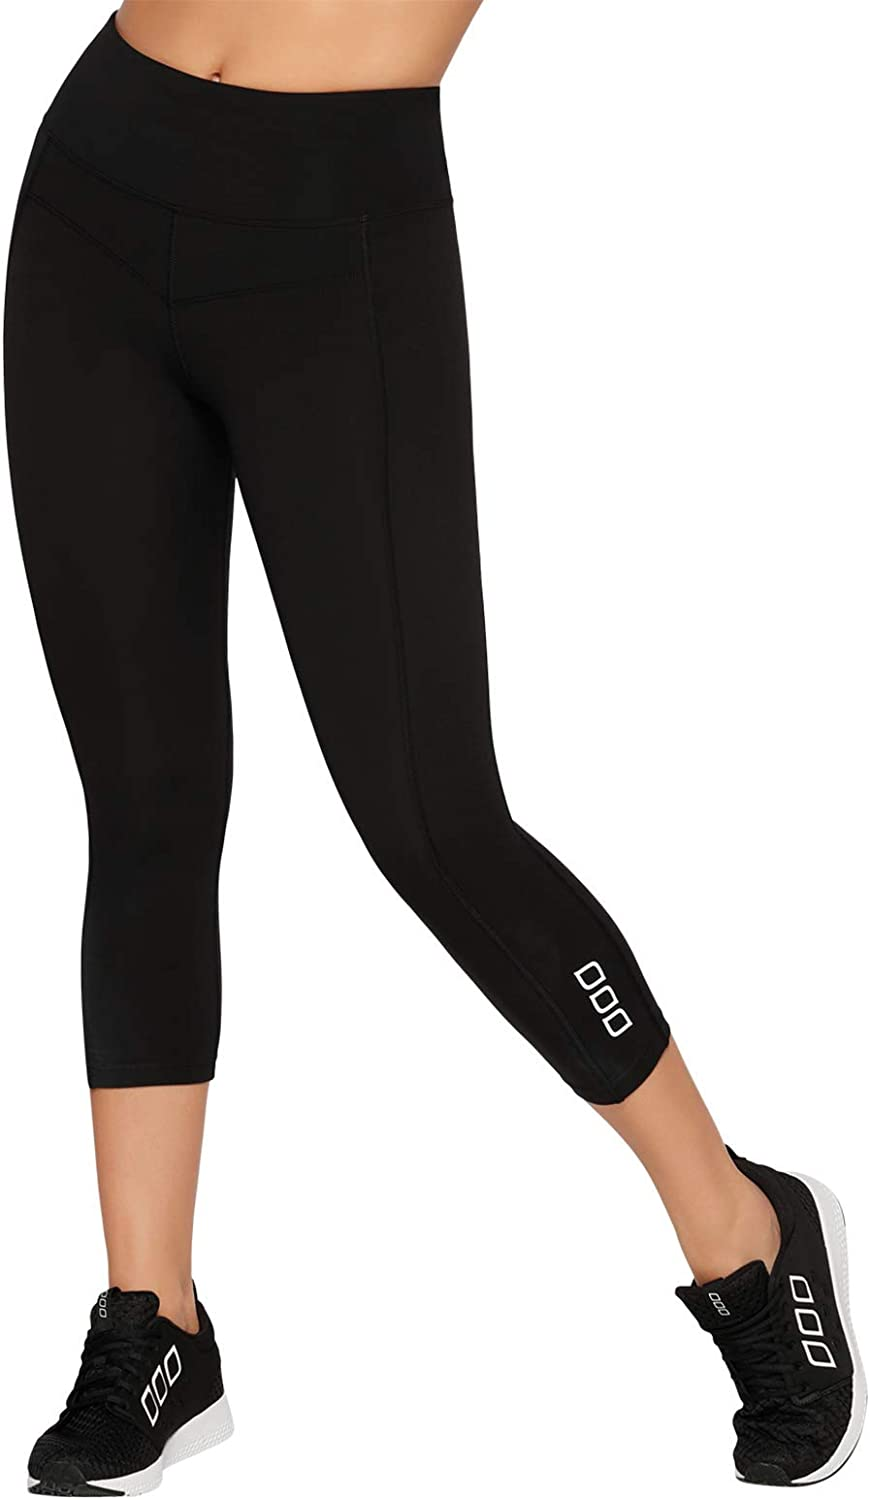 Lorna Jane Women's Bootsy 7 Max 72% OFF Popular overseas Support 8 Tights